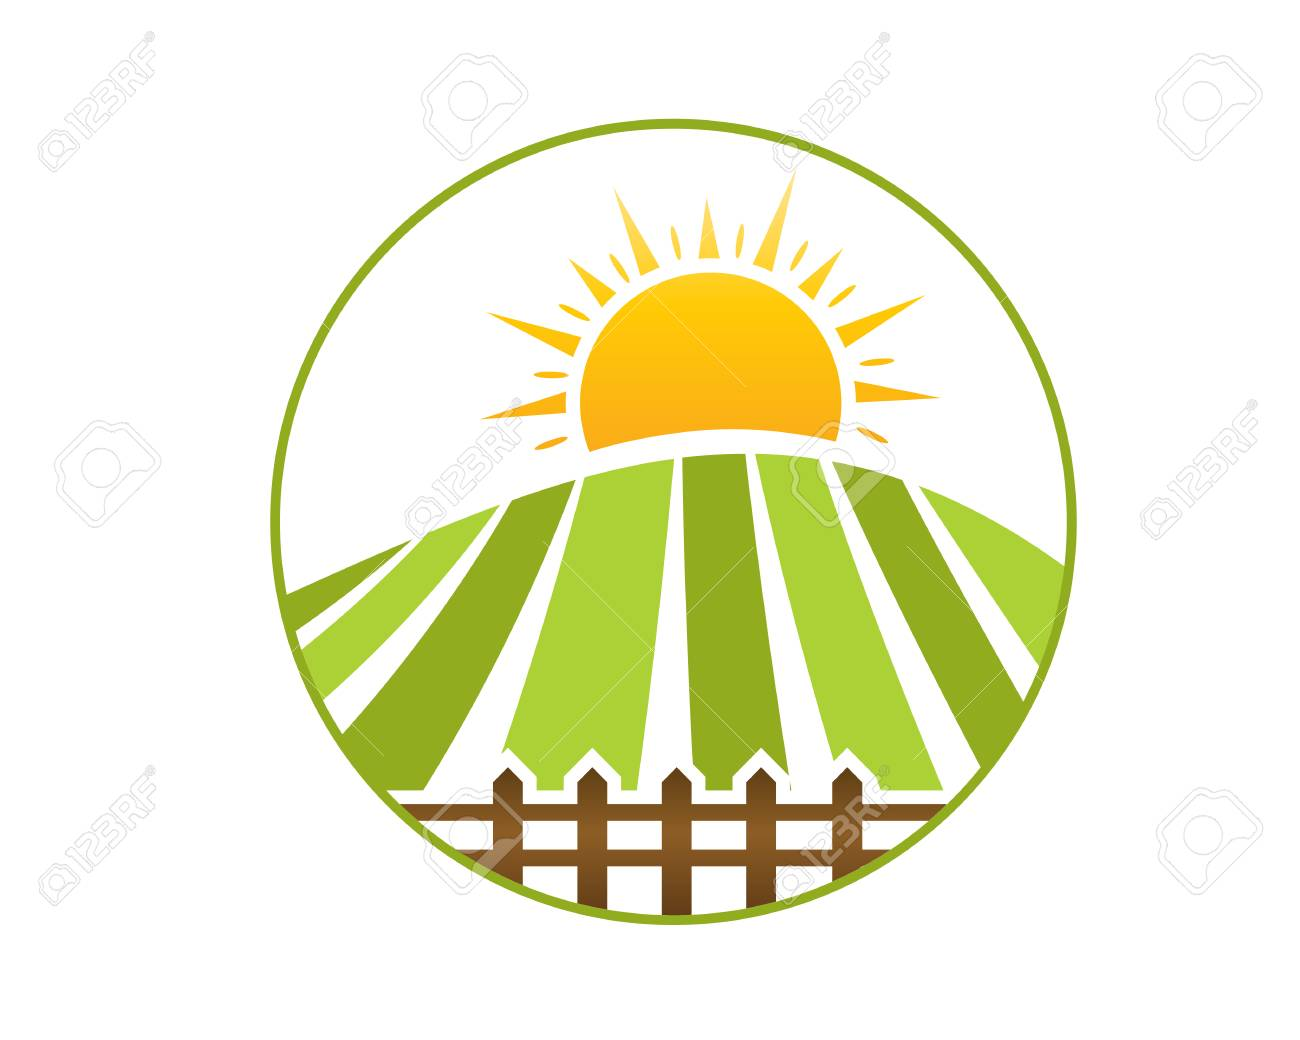 farm field with sun and farm fence within an outline of circle rh 123rf com Free Vector Flowers Free Vector Flowers